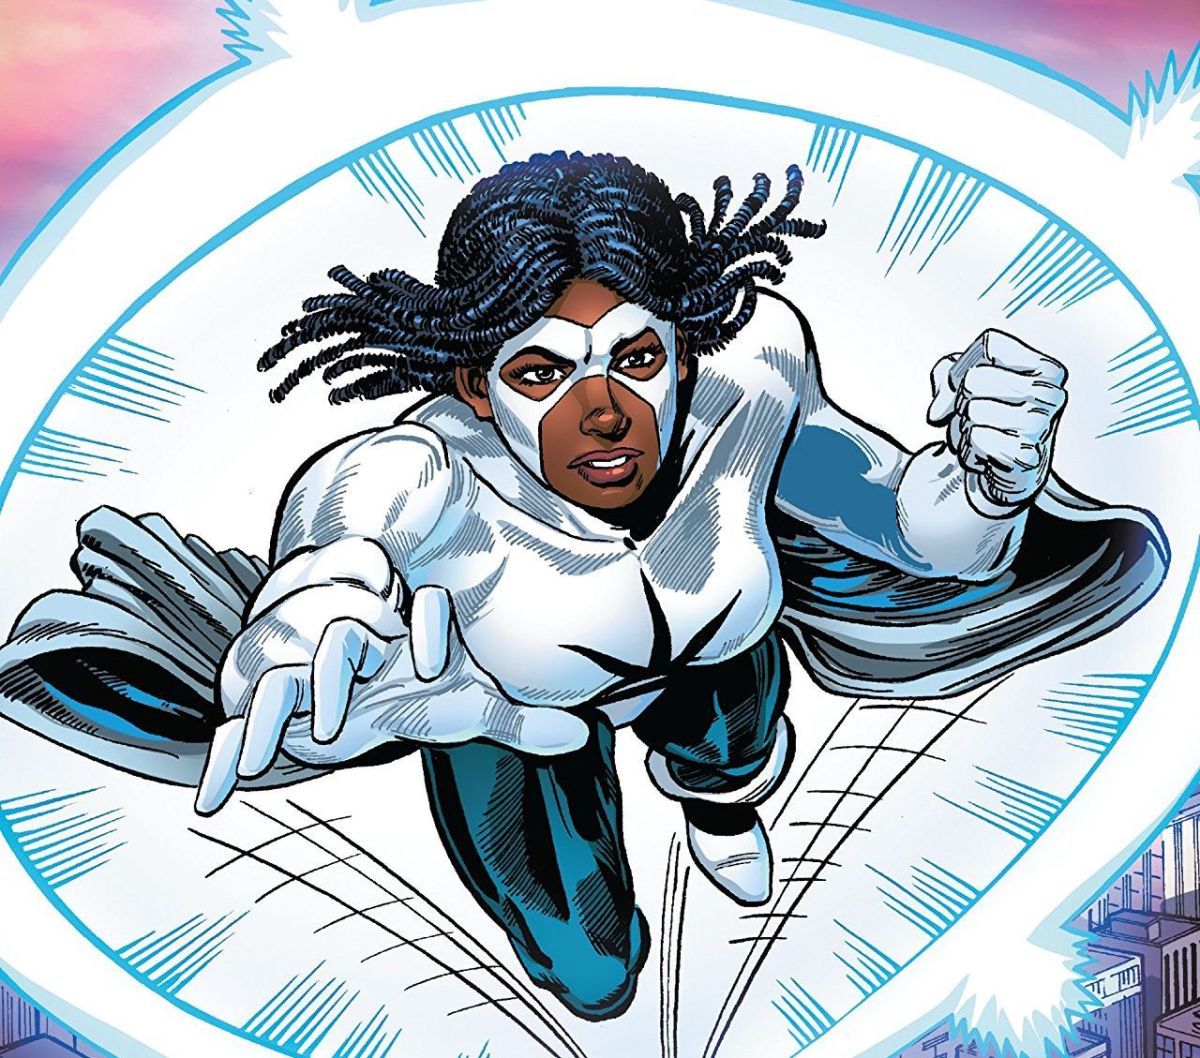 Monica Rambeau as Captain Marvel joined the Avengers and eventually led the team